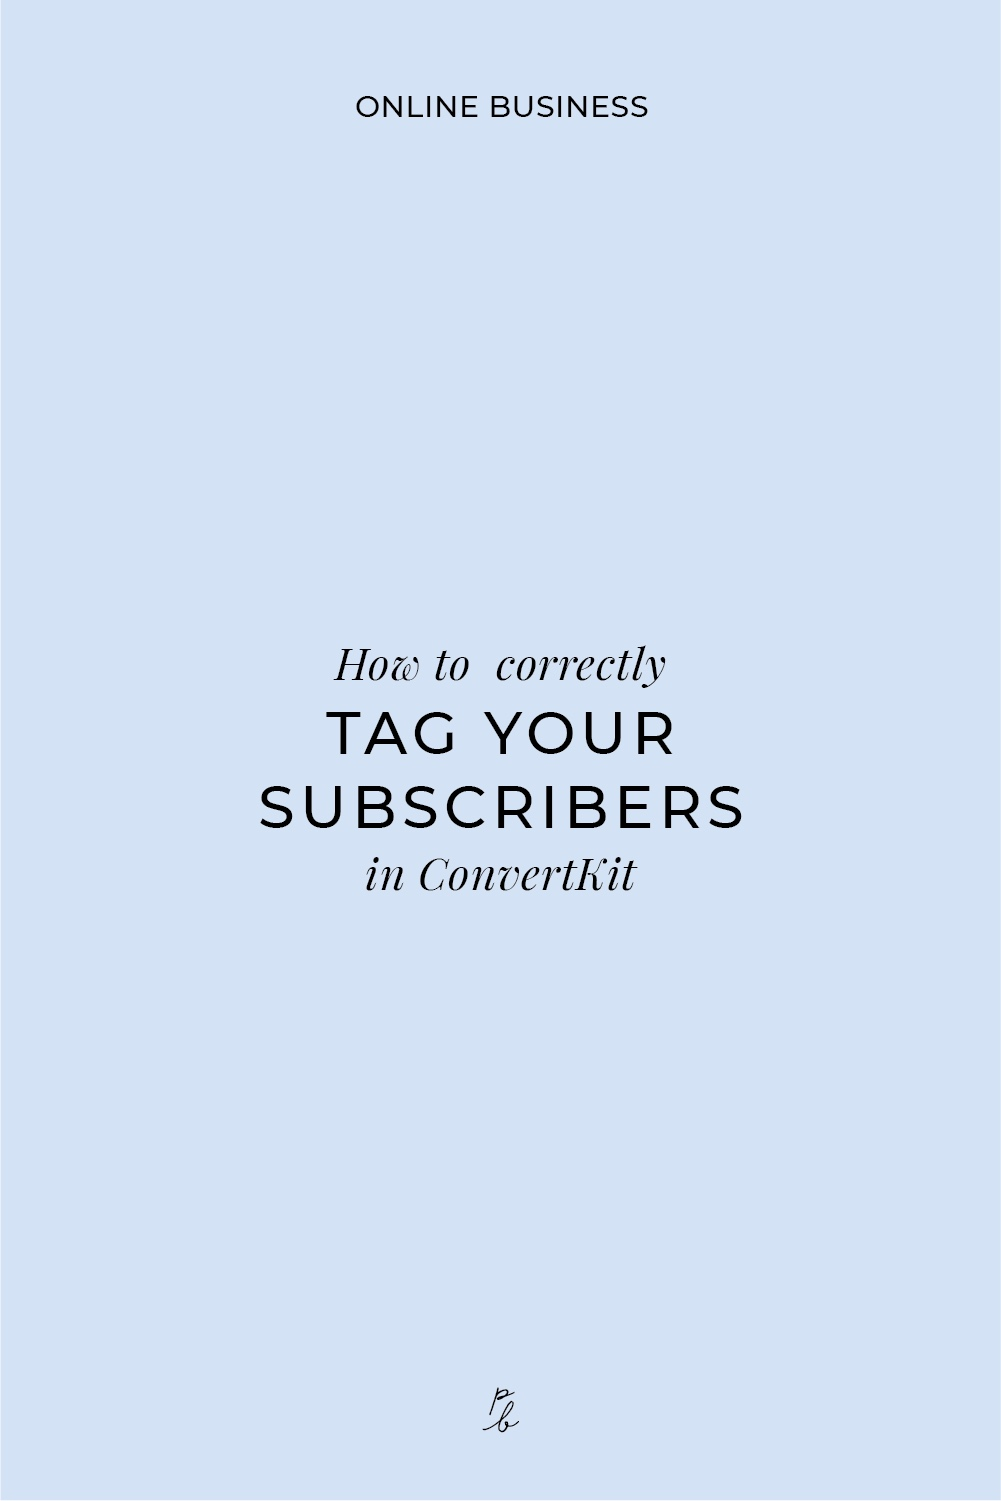 How to correctly tag your subscribers in convertkit-45-07.jpeg